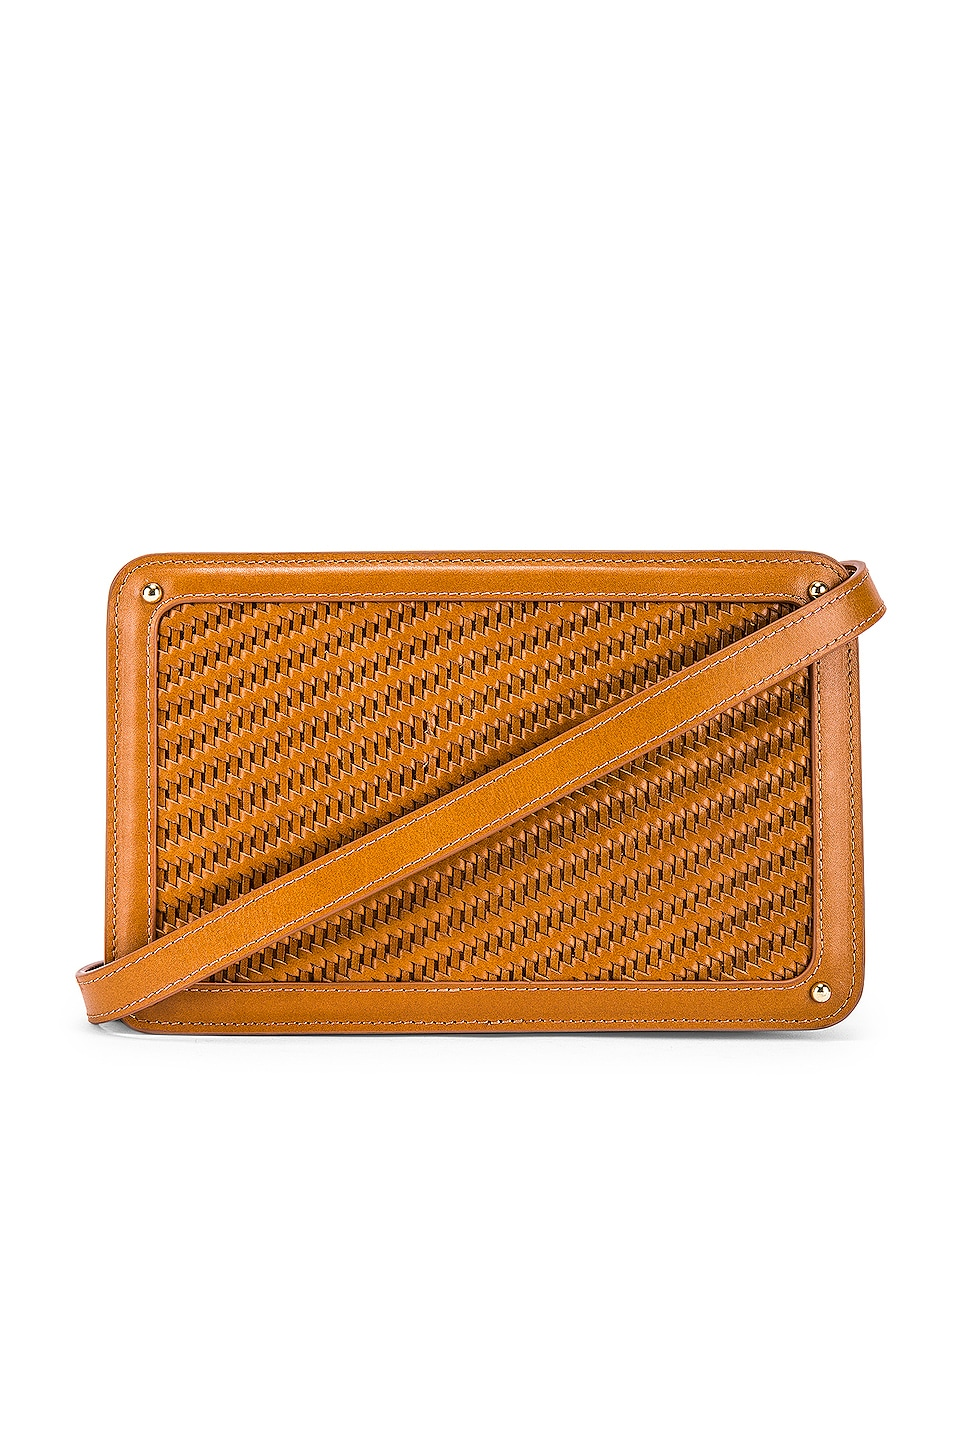 Sancia The Elodie Clutch in Cognac